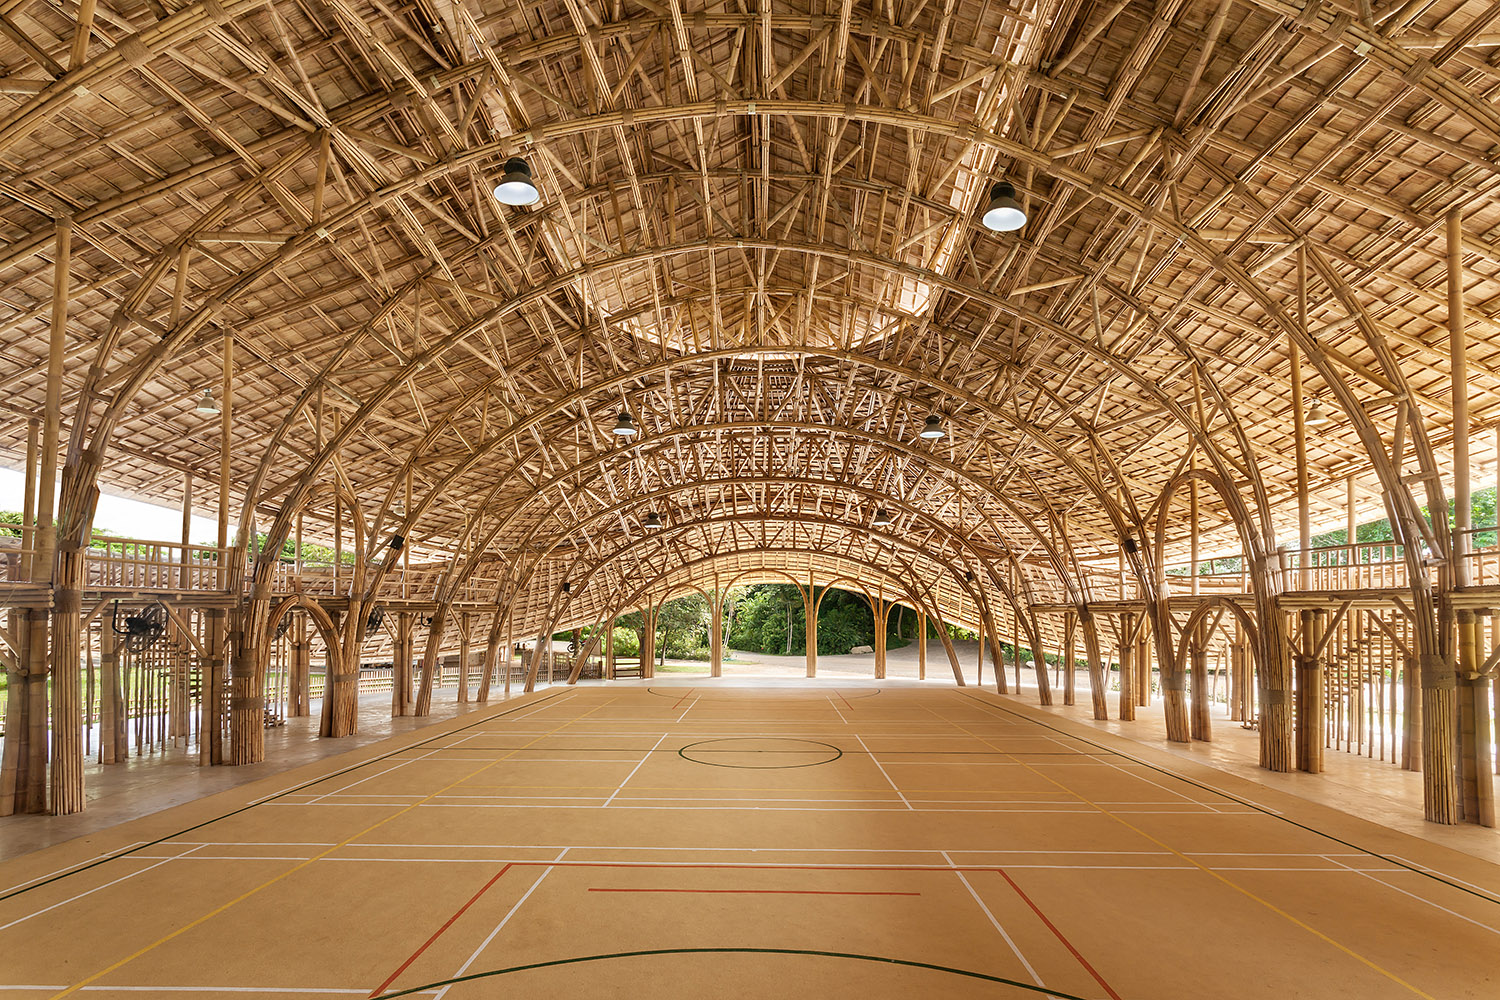 World Architecture News publishes the Bamboo Sports Hall